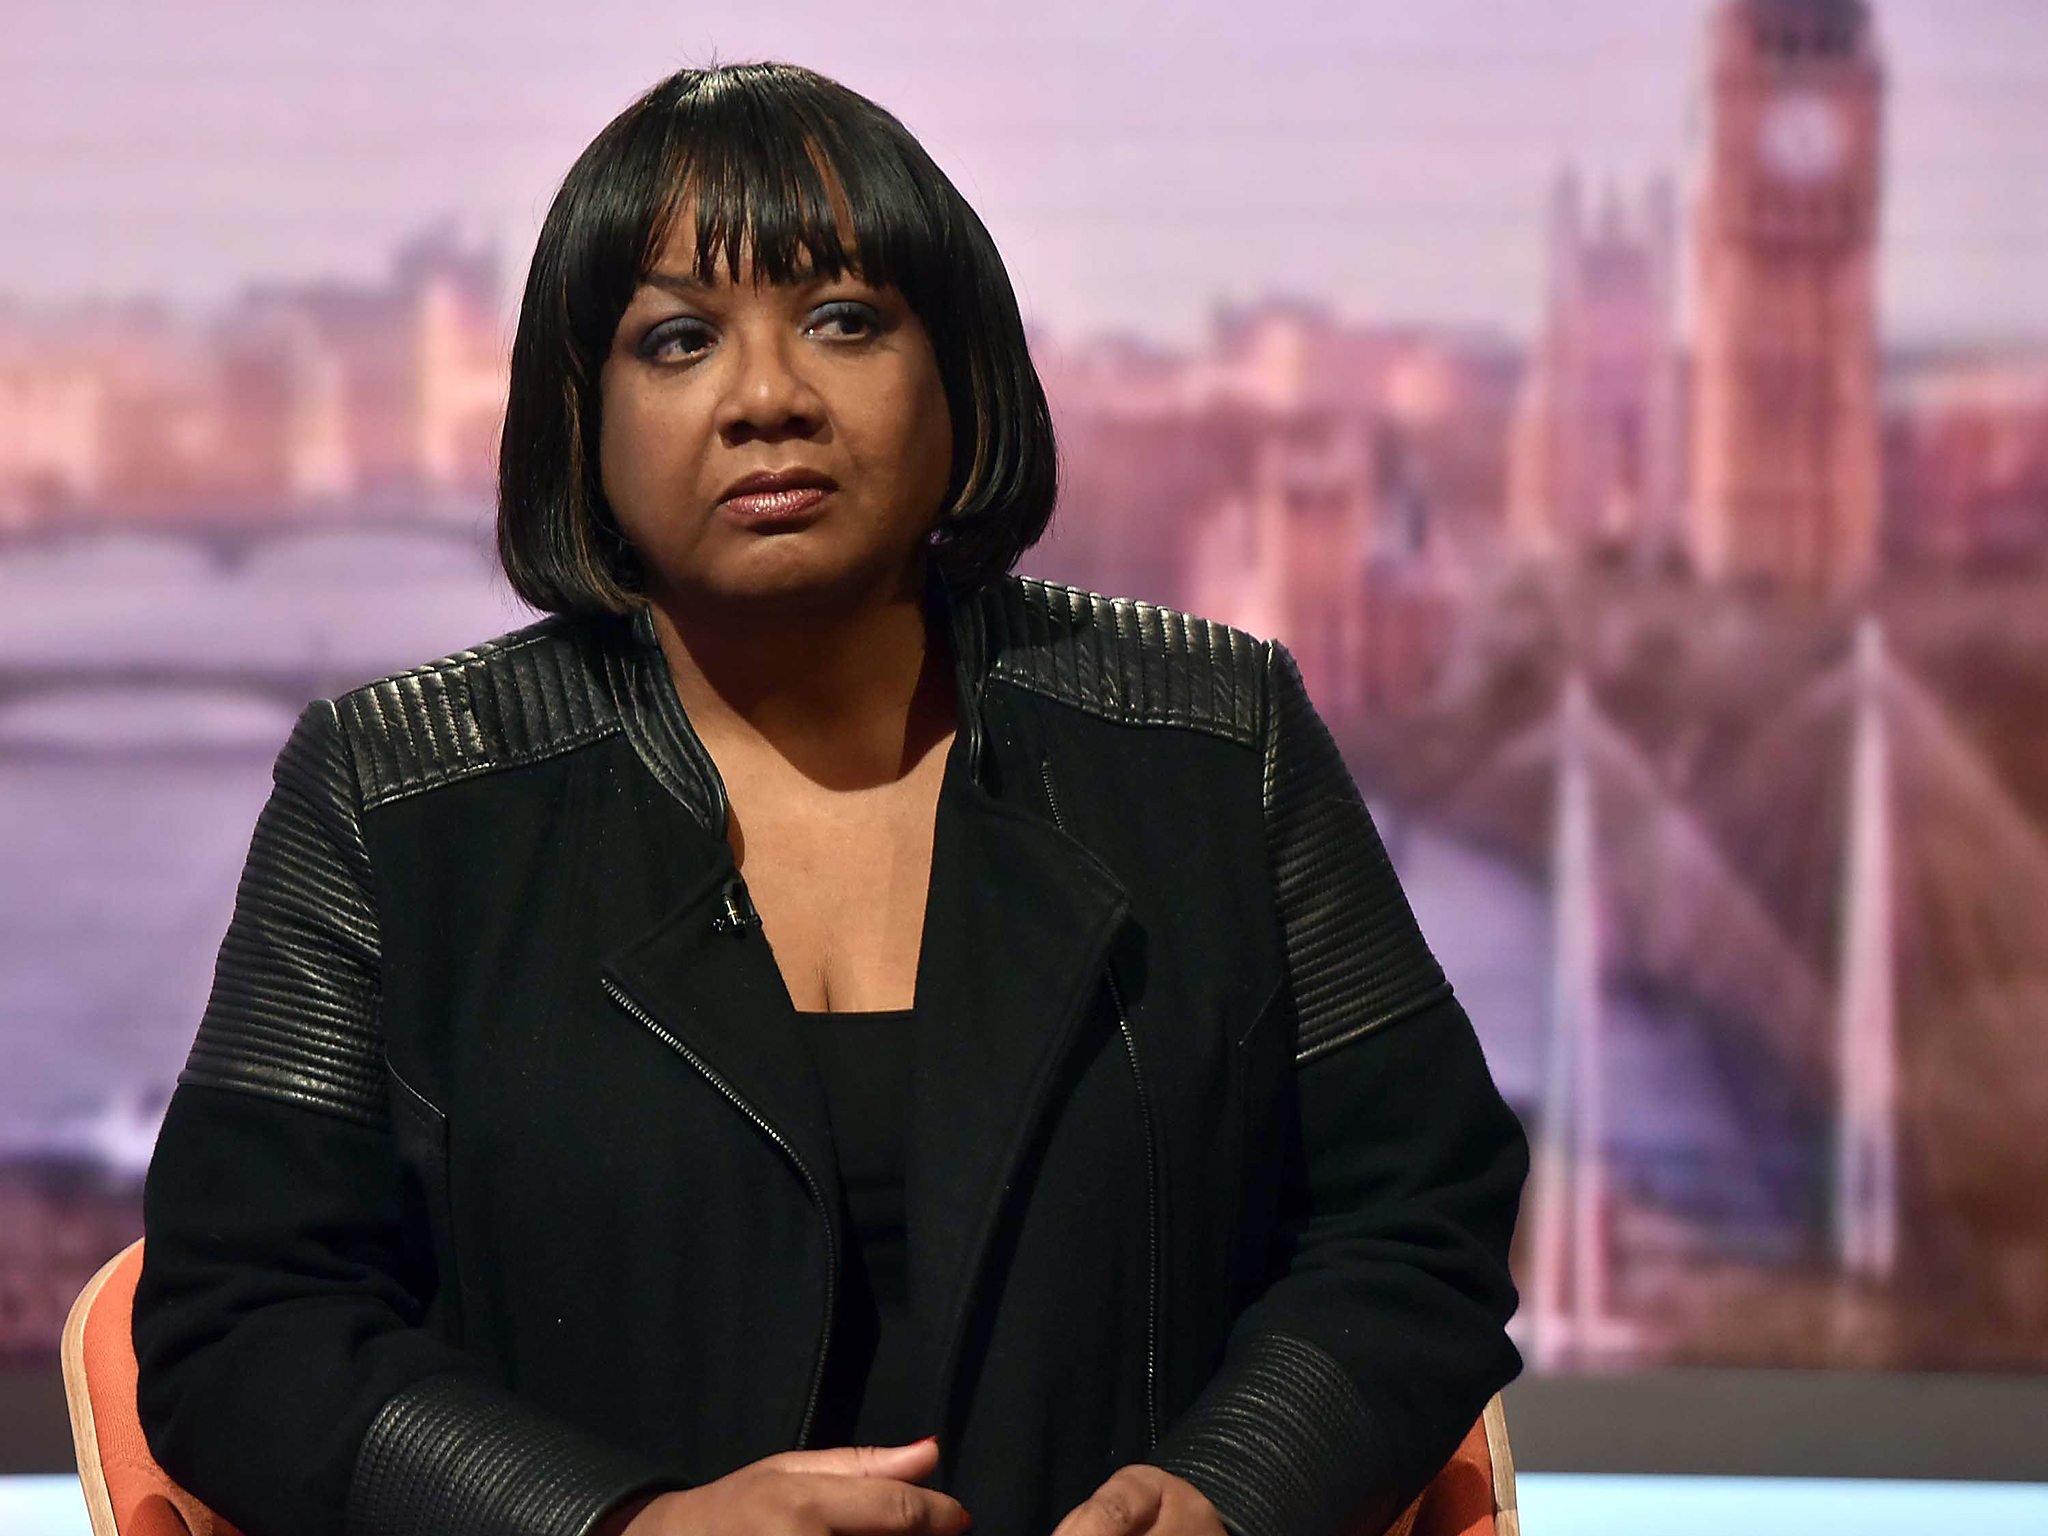 BBA Founder critiques mainstream News election coverage of Diane Abbott MP